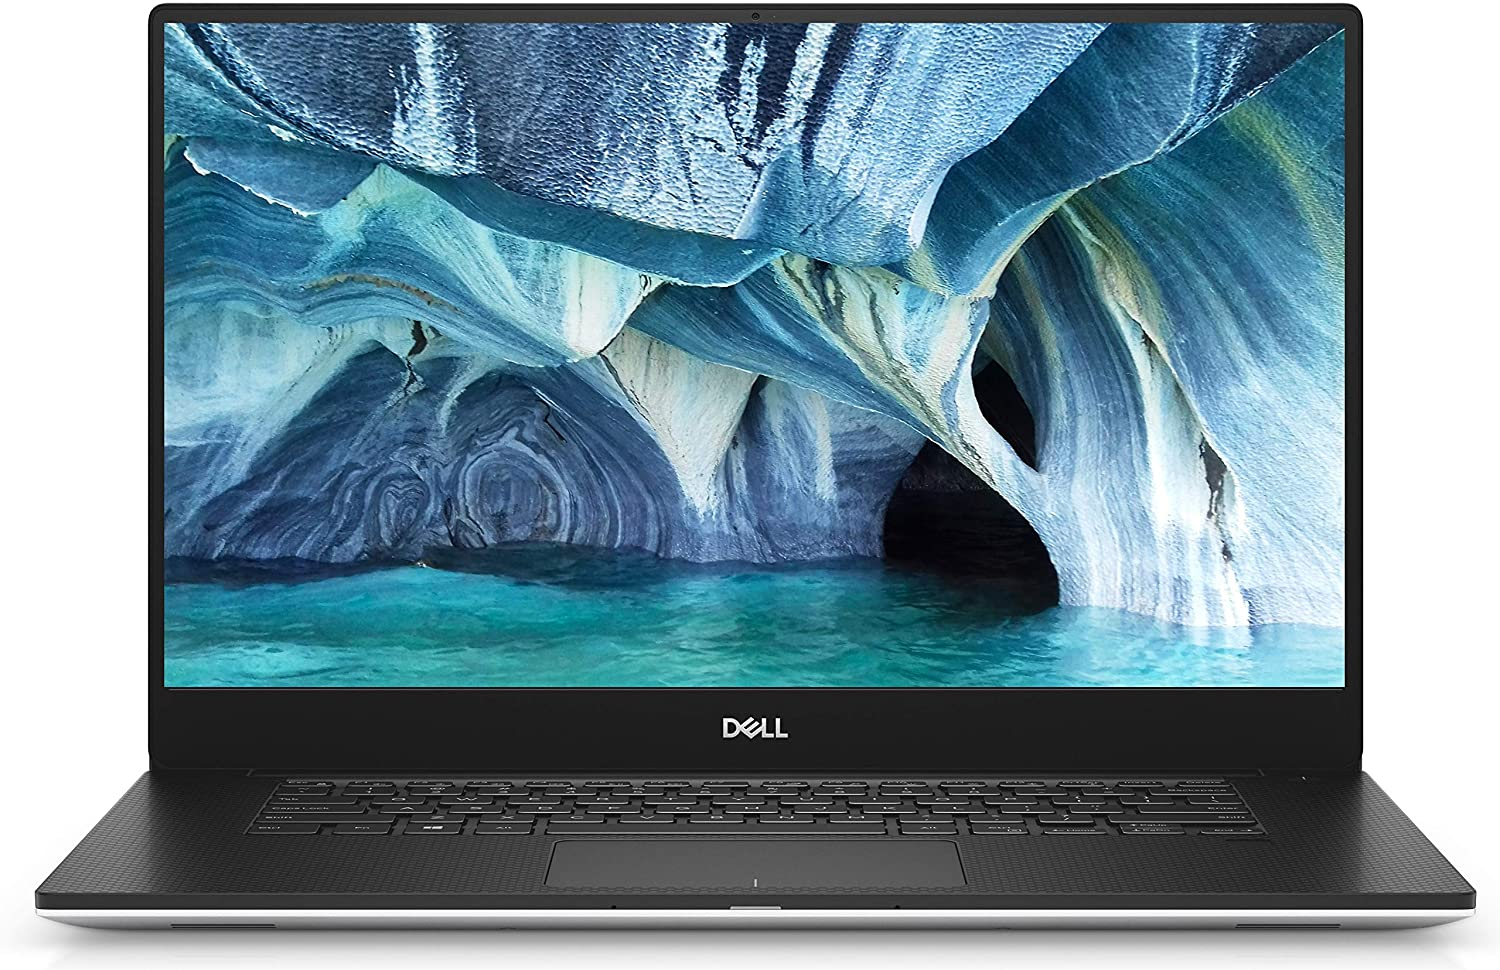 Dell XPS 15 1 best budget laptop for photoshop